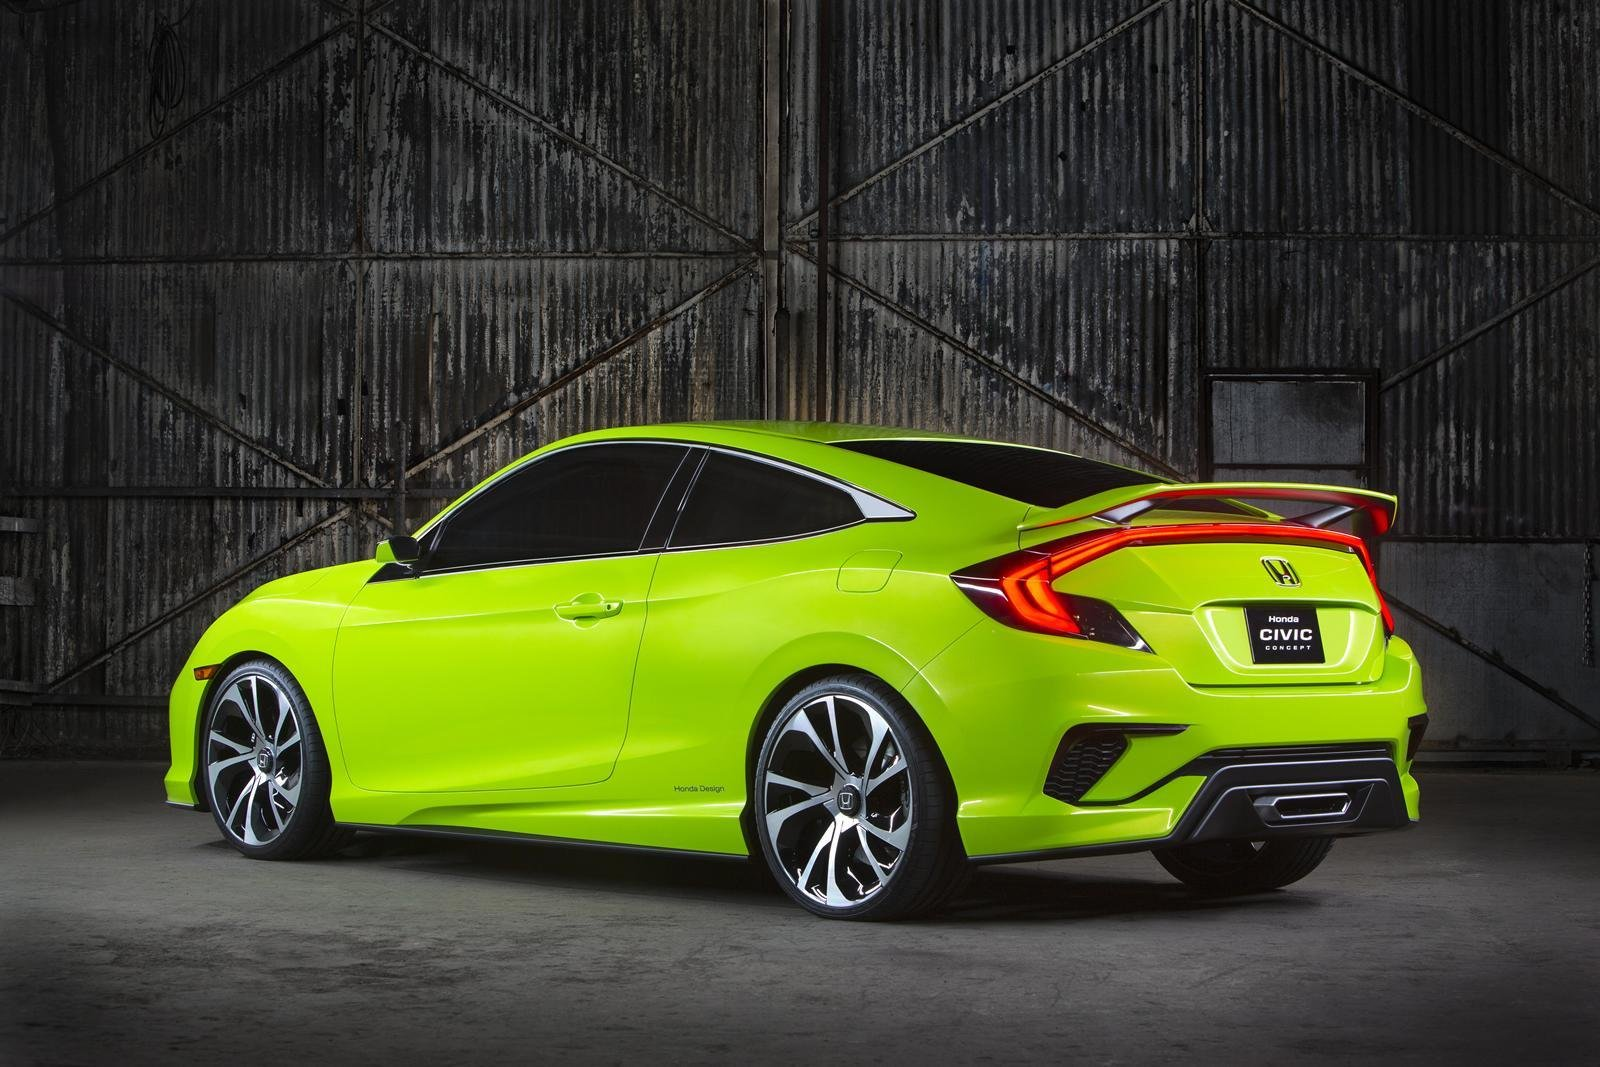 Latest 2015 Honda Civic Concept Is A Stunner Previews New Civic Free Download